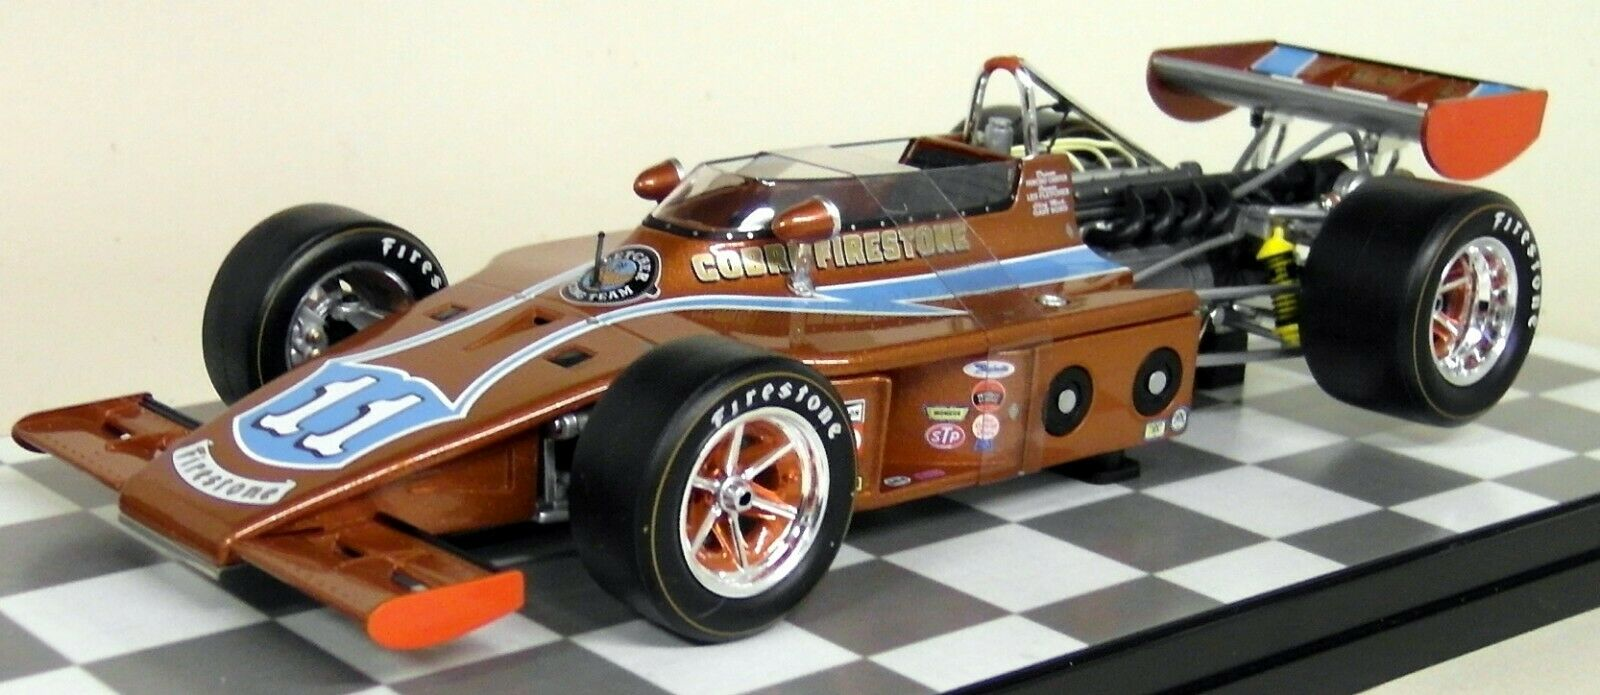 Carousel 1 1 18 Scale 4703 AAR Eagle 1974 1974 1974 Indianapolis 500 Cobre Firestone Eagle b97c46